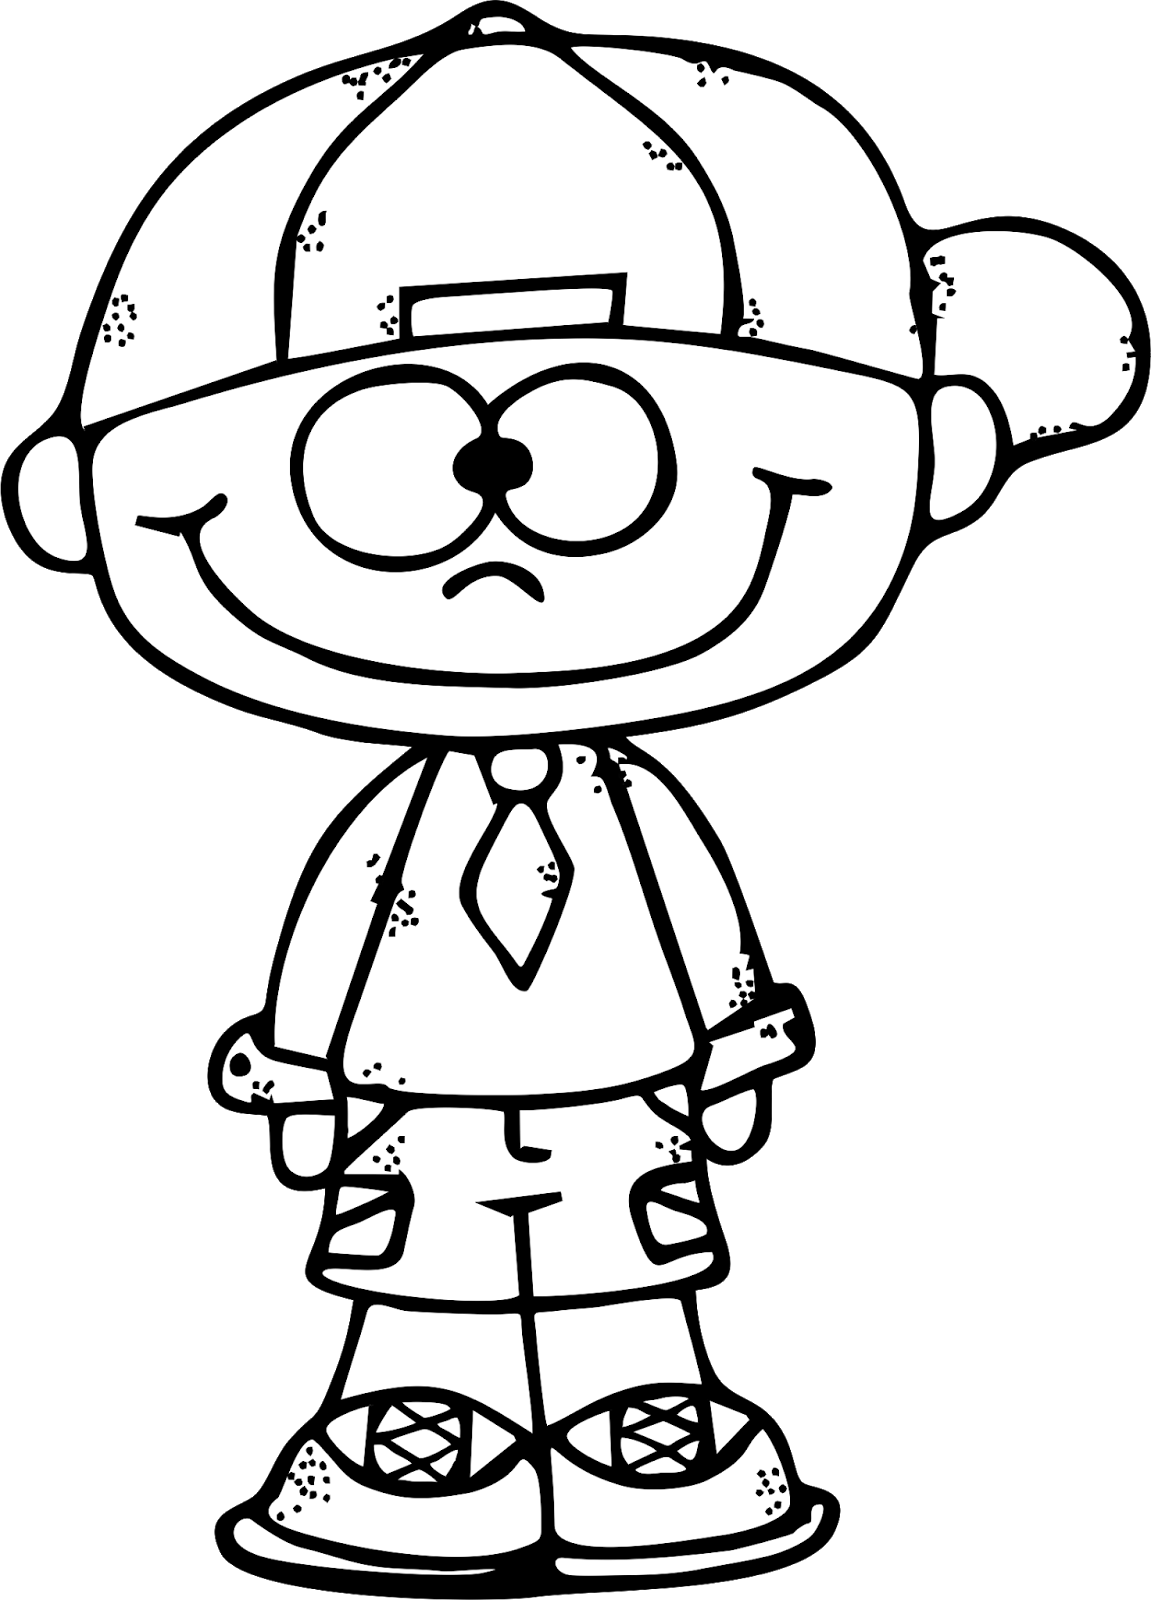 Kid clipart career. Boy black and white